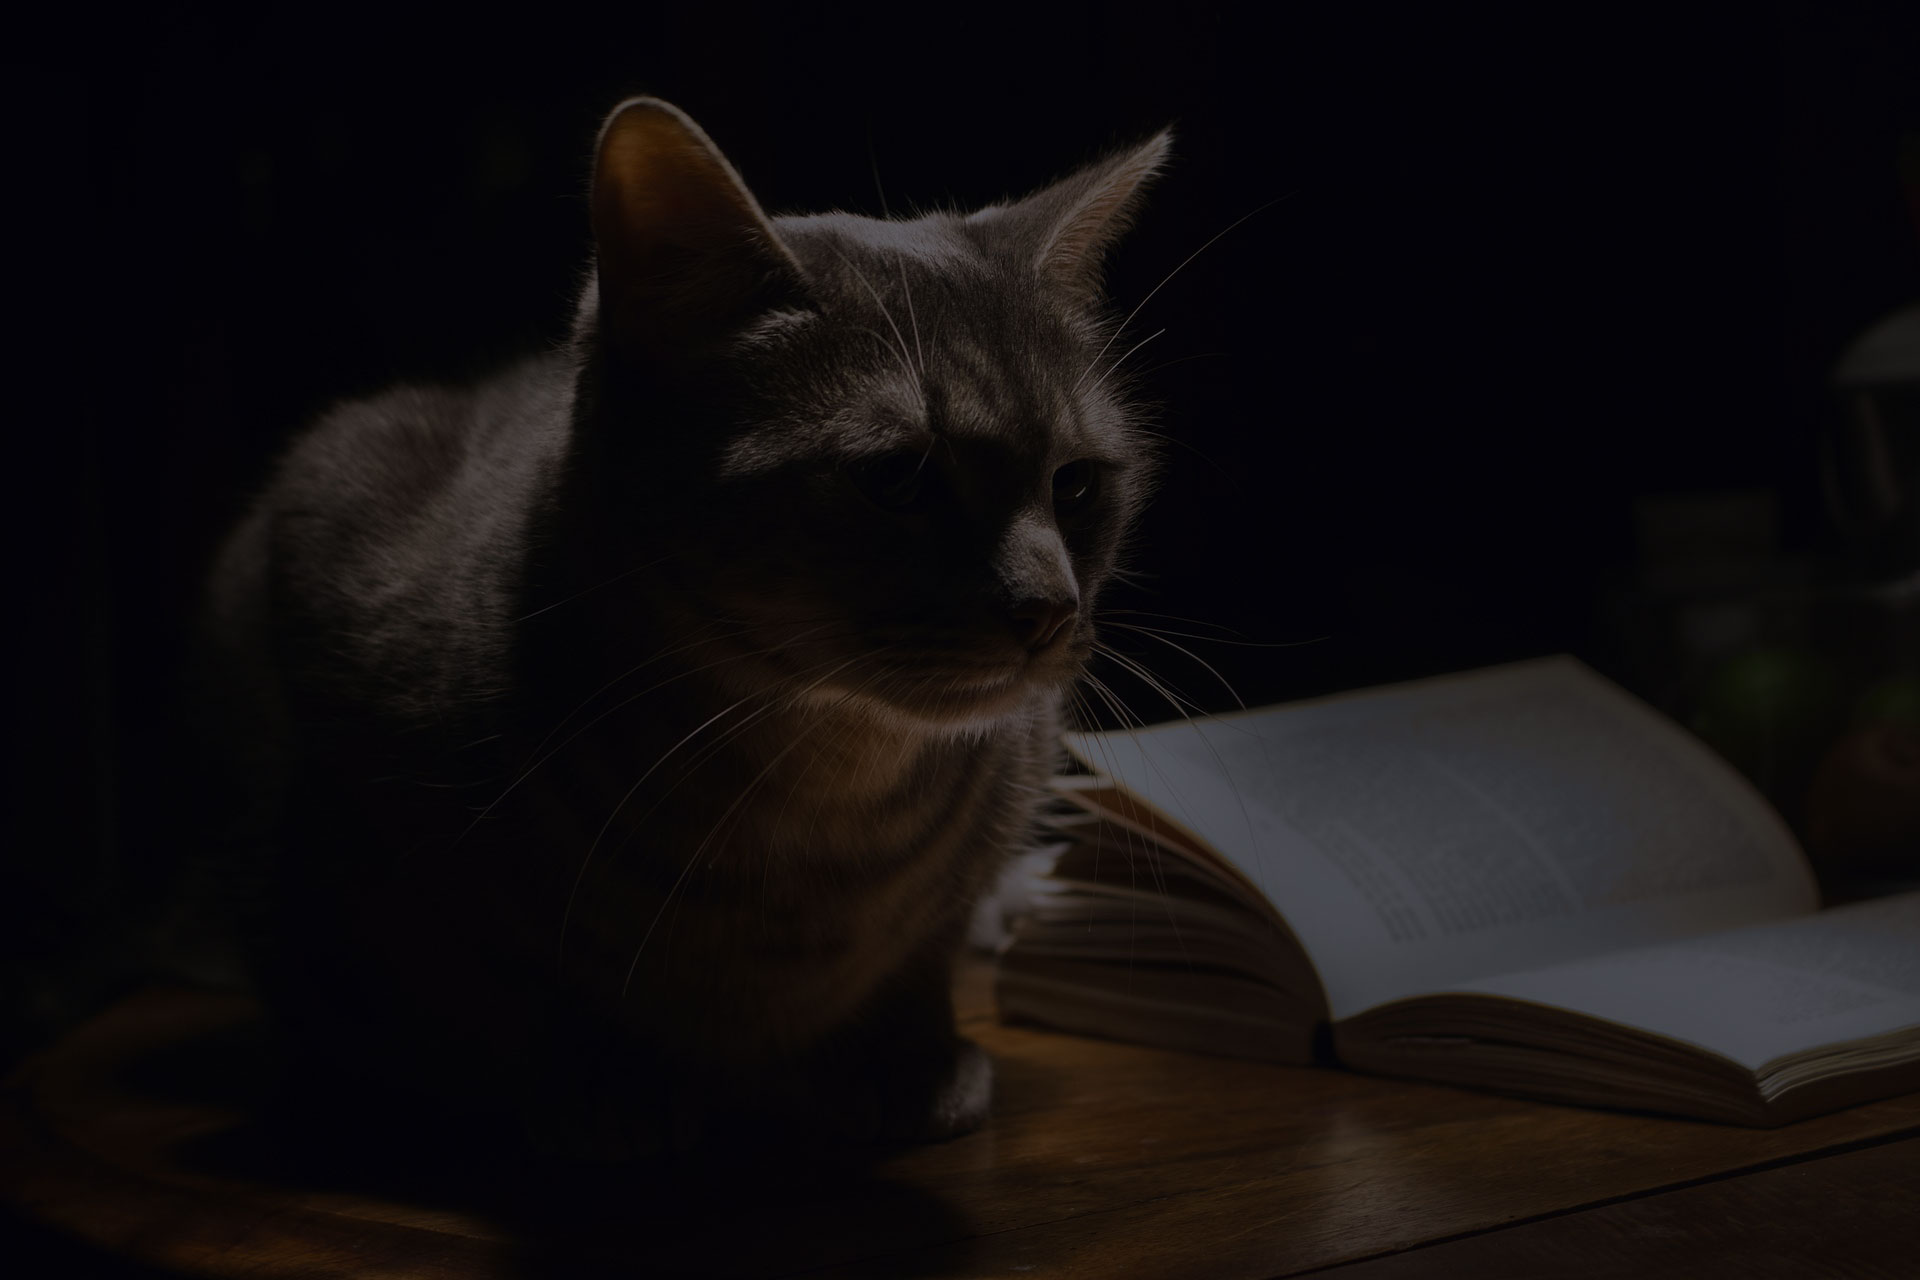 Grey Taby cat lying next to book